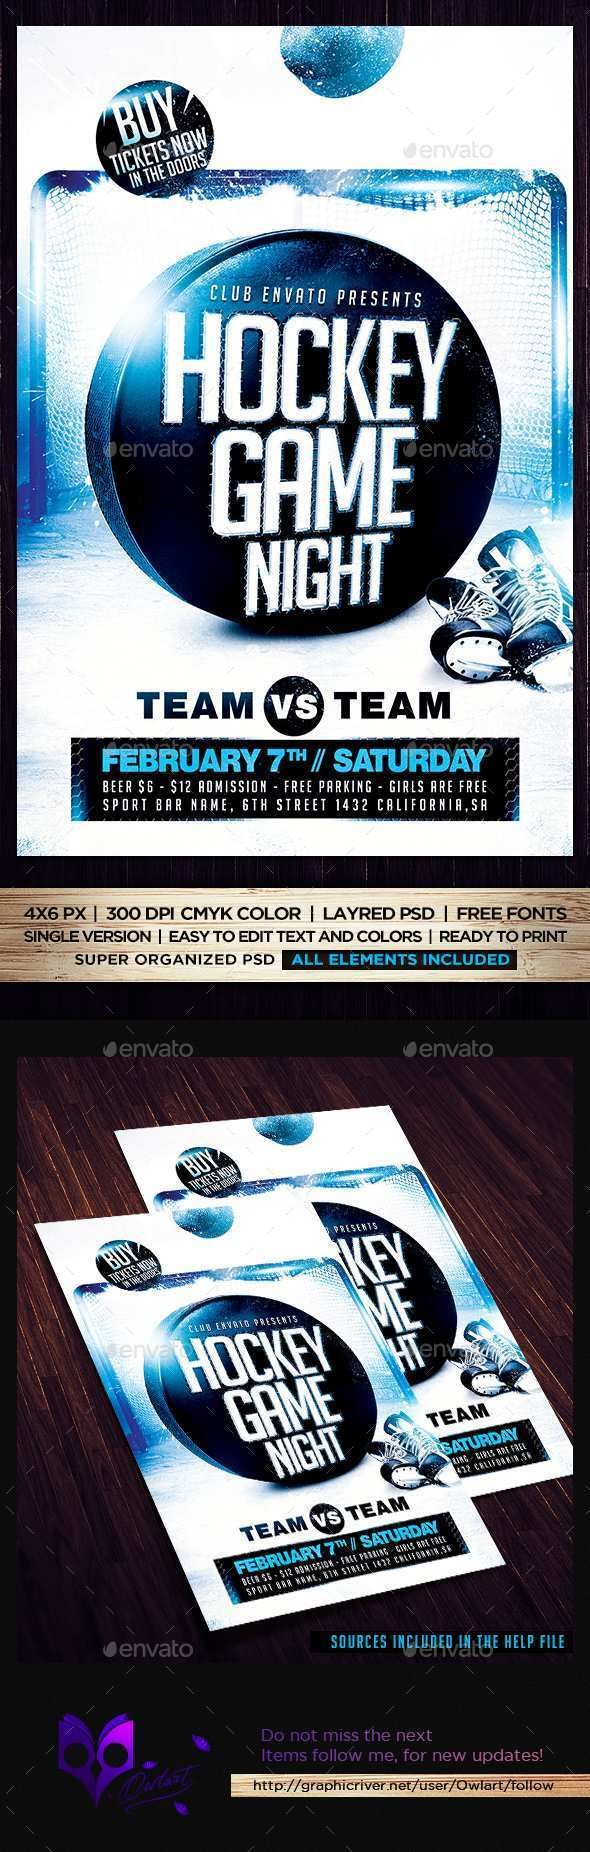 98 Creative Free Hockey Flyer Template in Word by Free Hockey Flyer Template